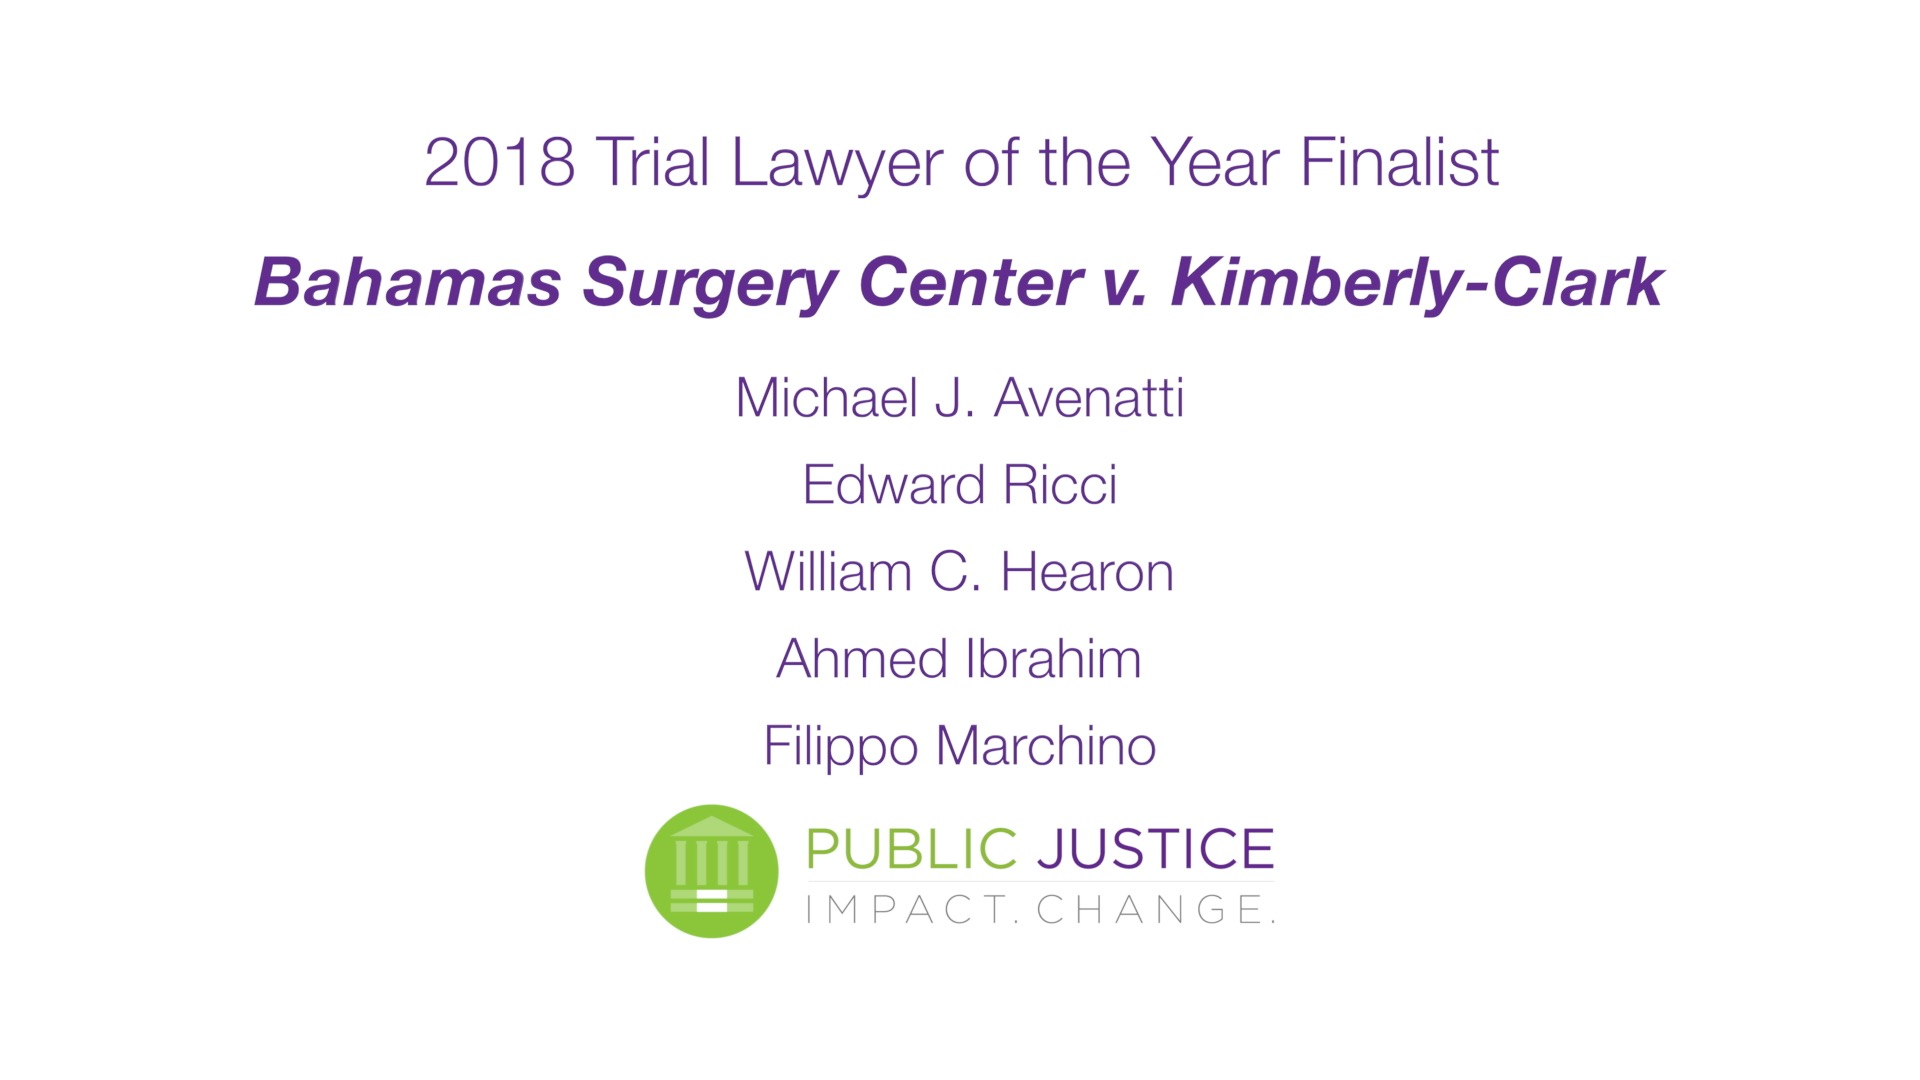 Trial Lawyer of the Year 2018